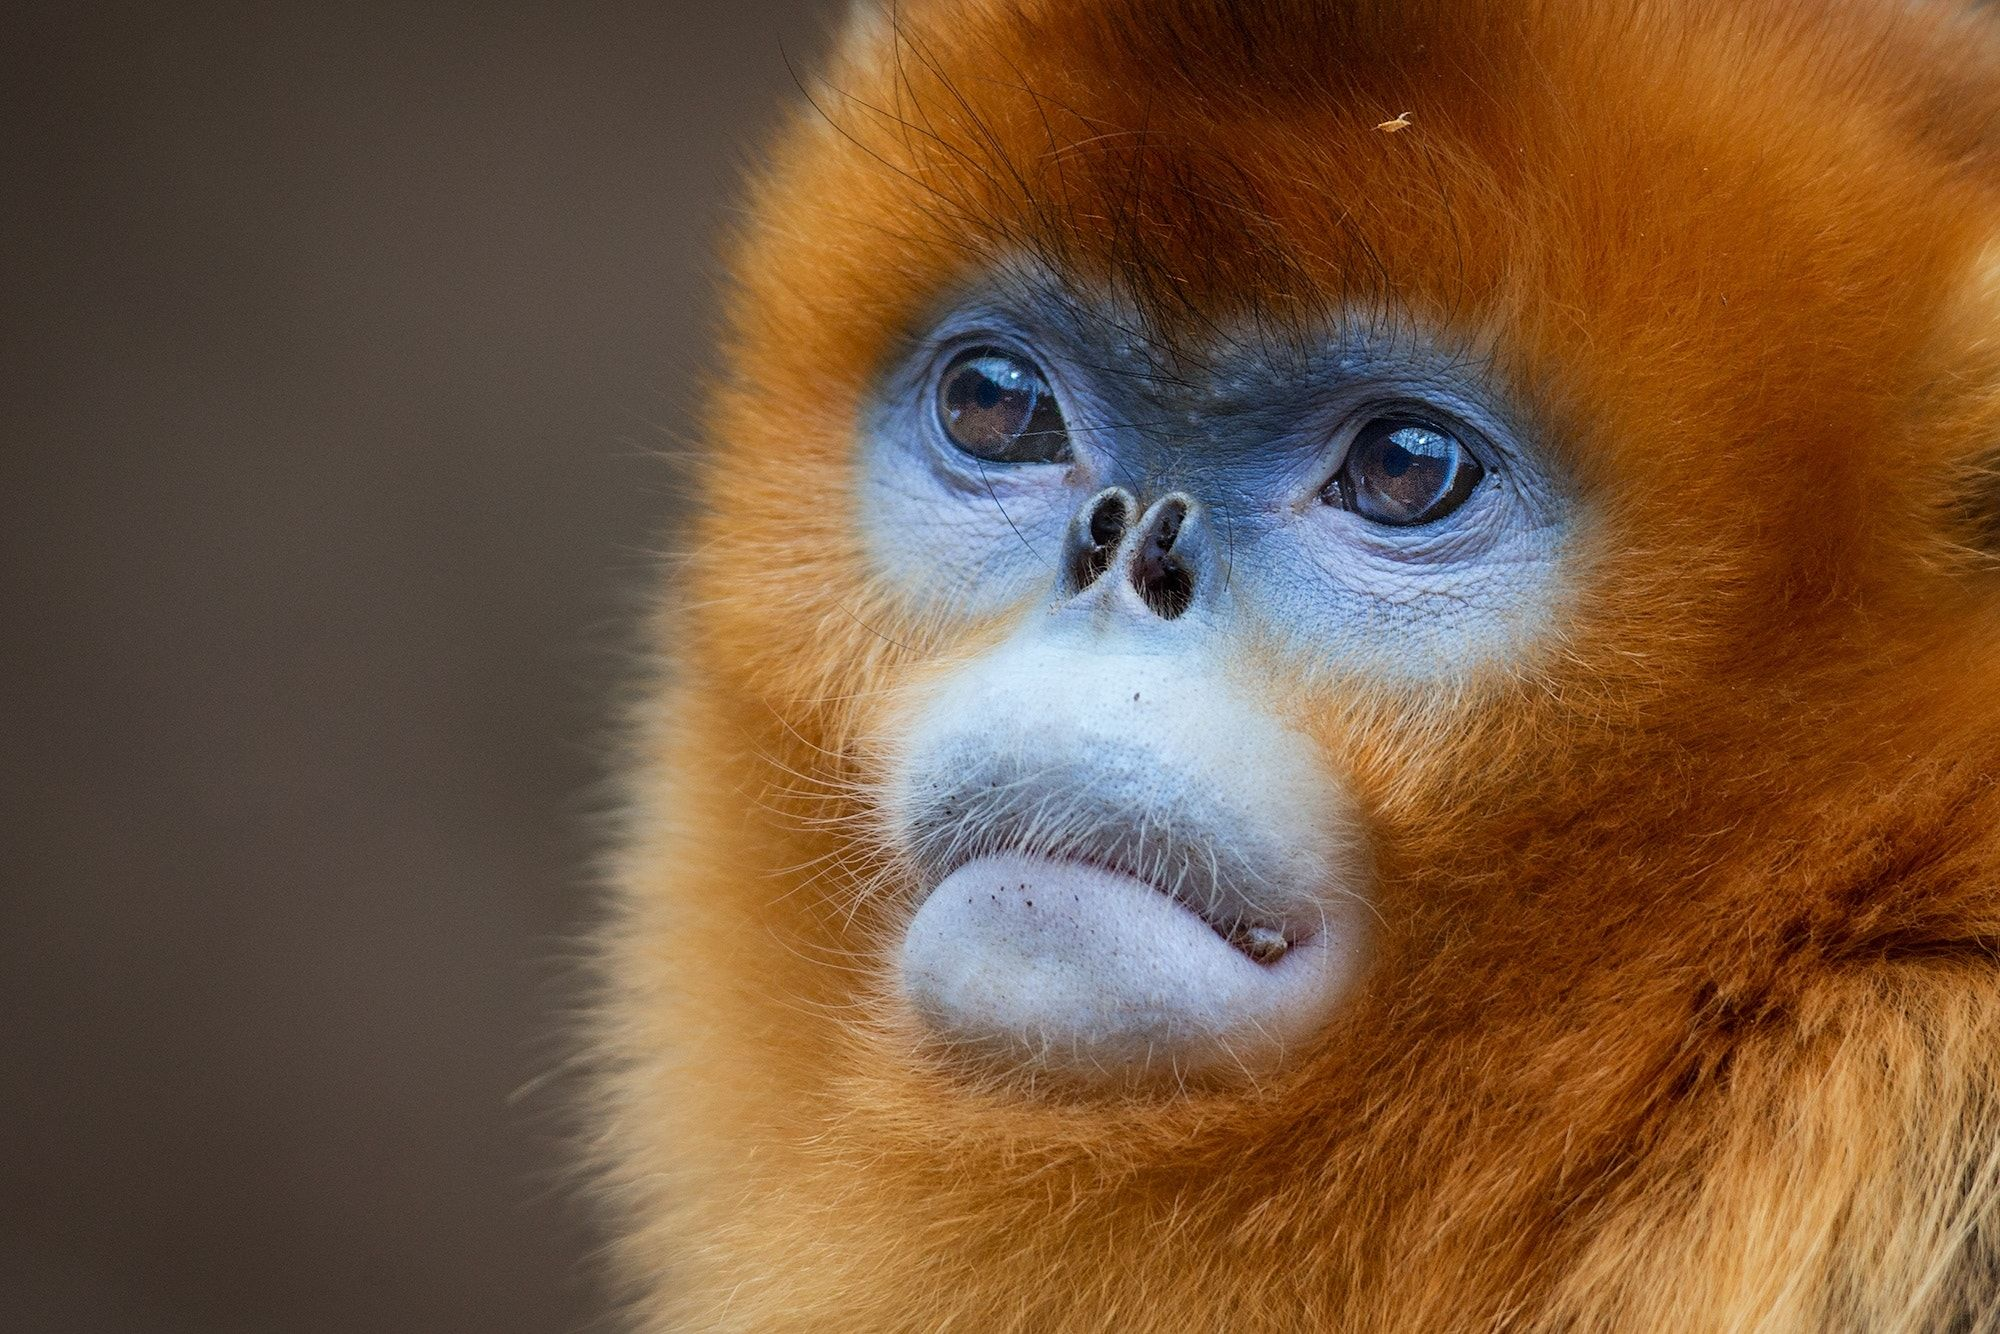 Golden Snub Nosed Monkey China Close Up Of A Golden Snub Nosed Monkey Showing The Bizarre Nose Of The Primate Don T Know If It Has Primates Monkey Animals